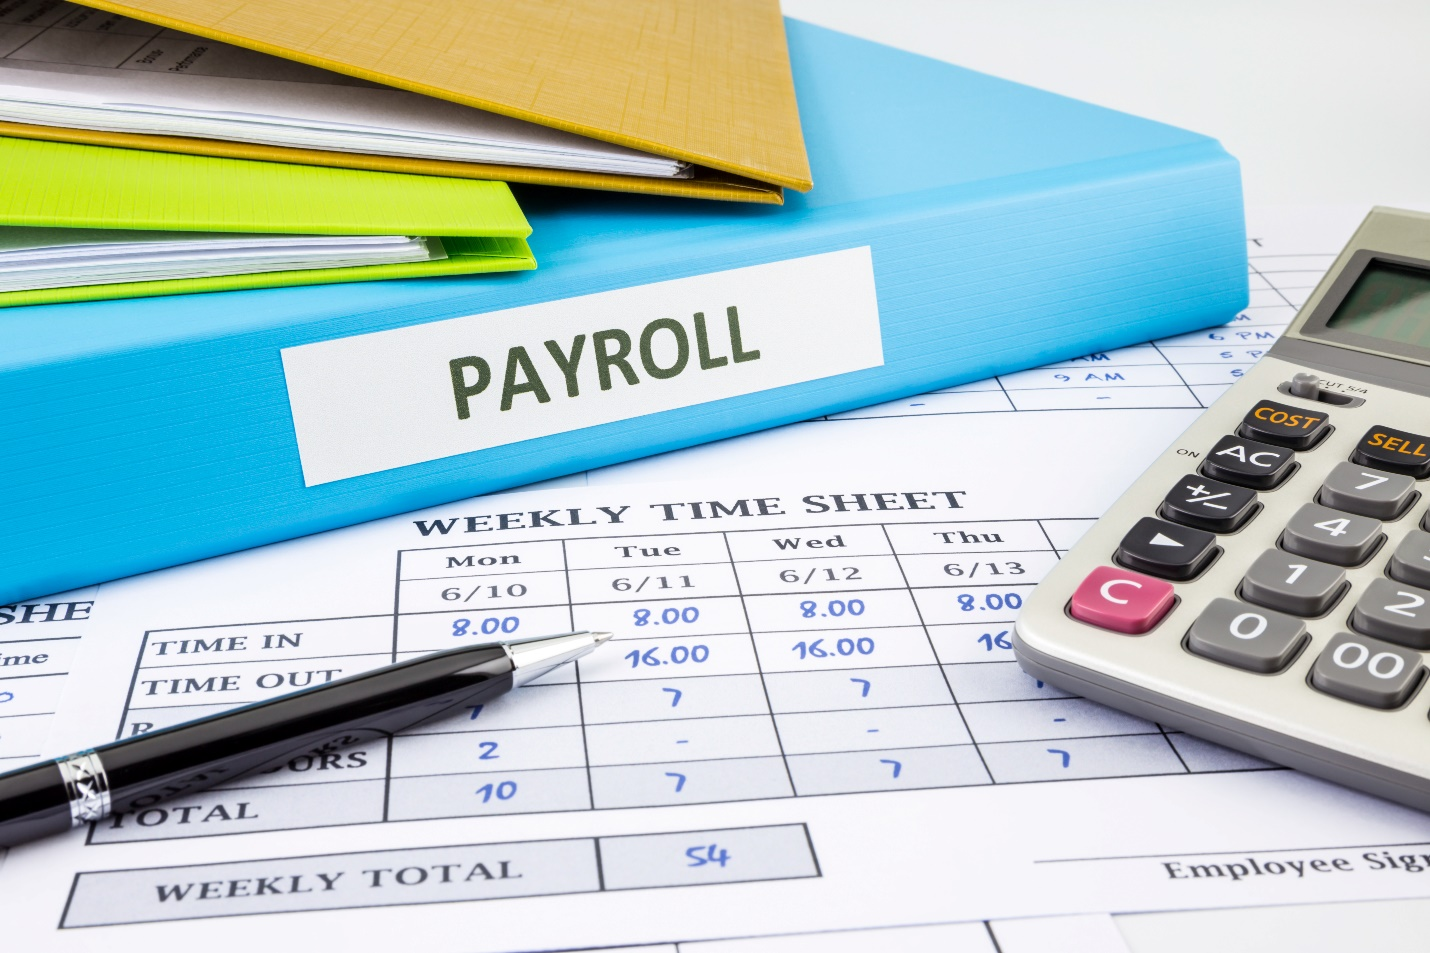 PAYROLL word on blue binder place on weekly time sheet and payroll summary report